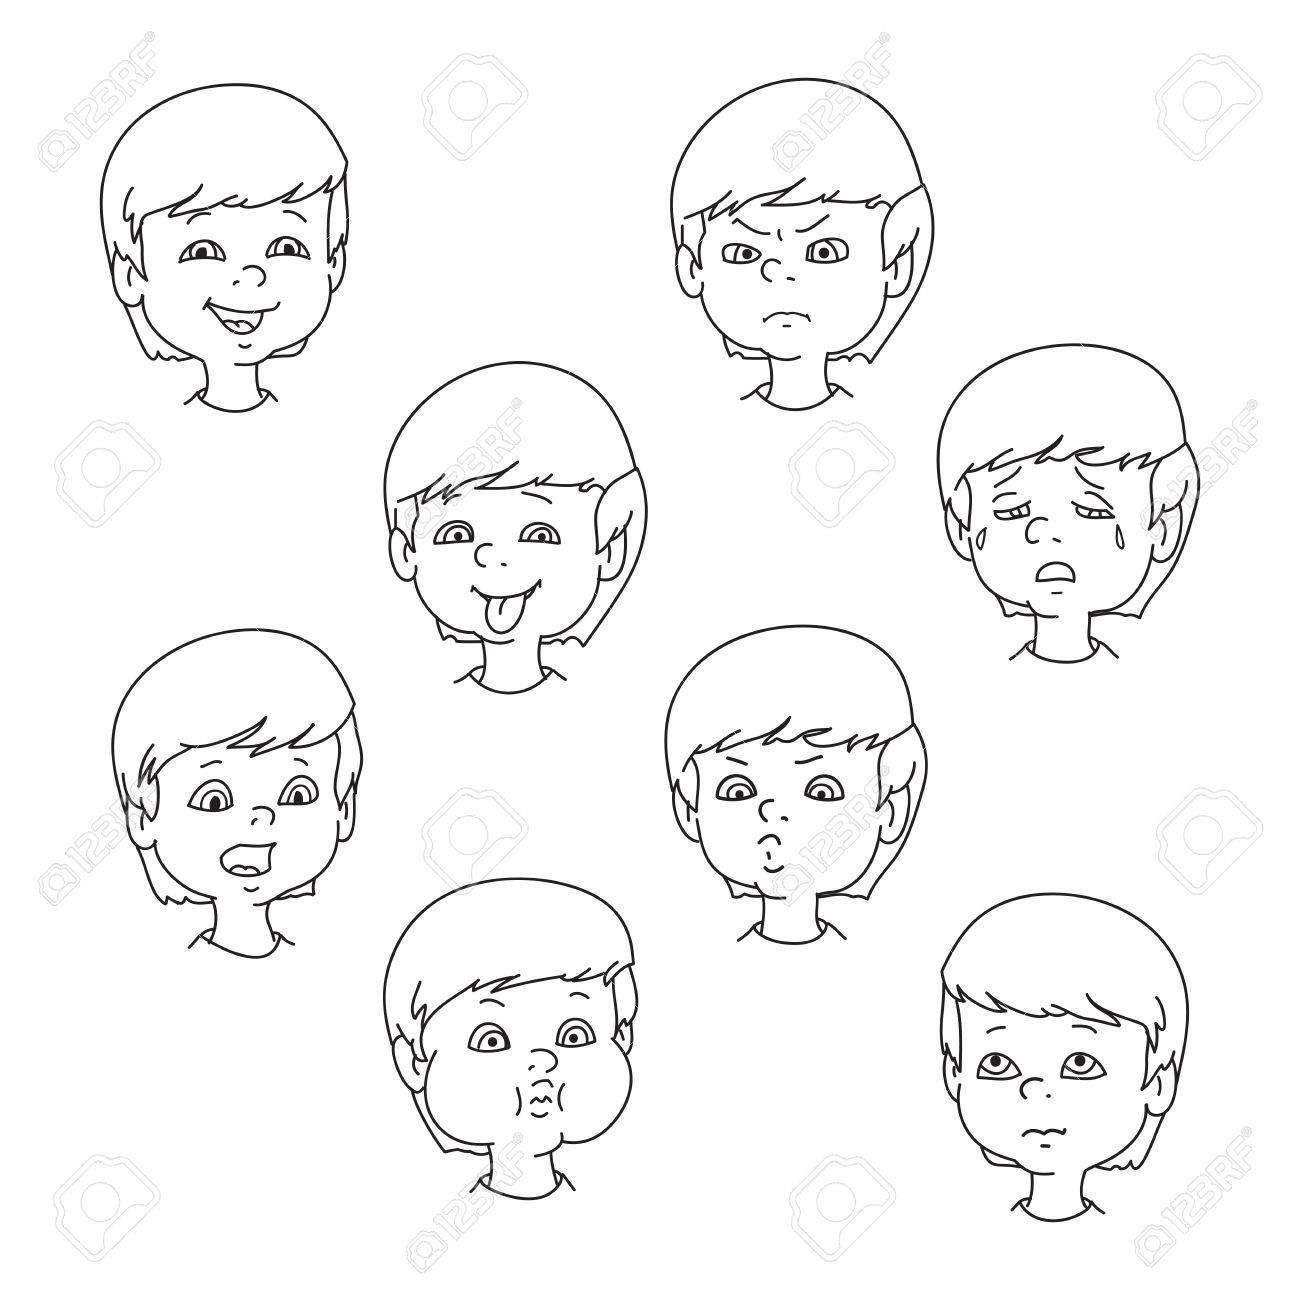 Child face emotion gestures, black and white vector illustration,...